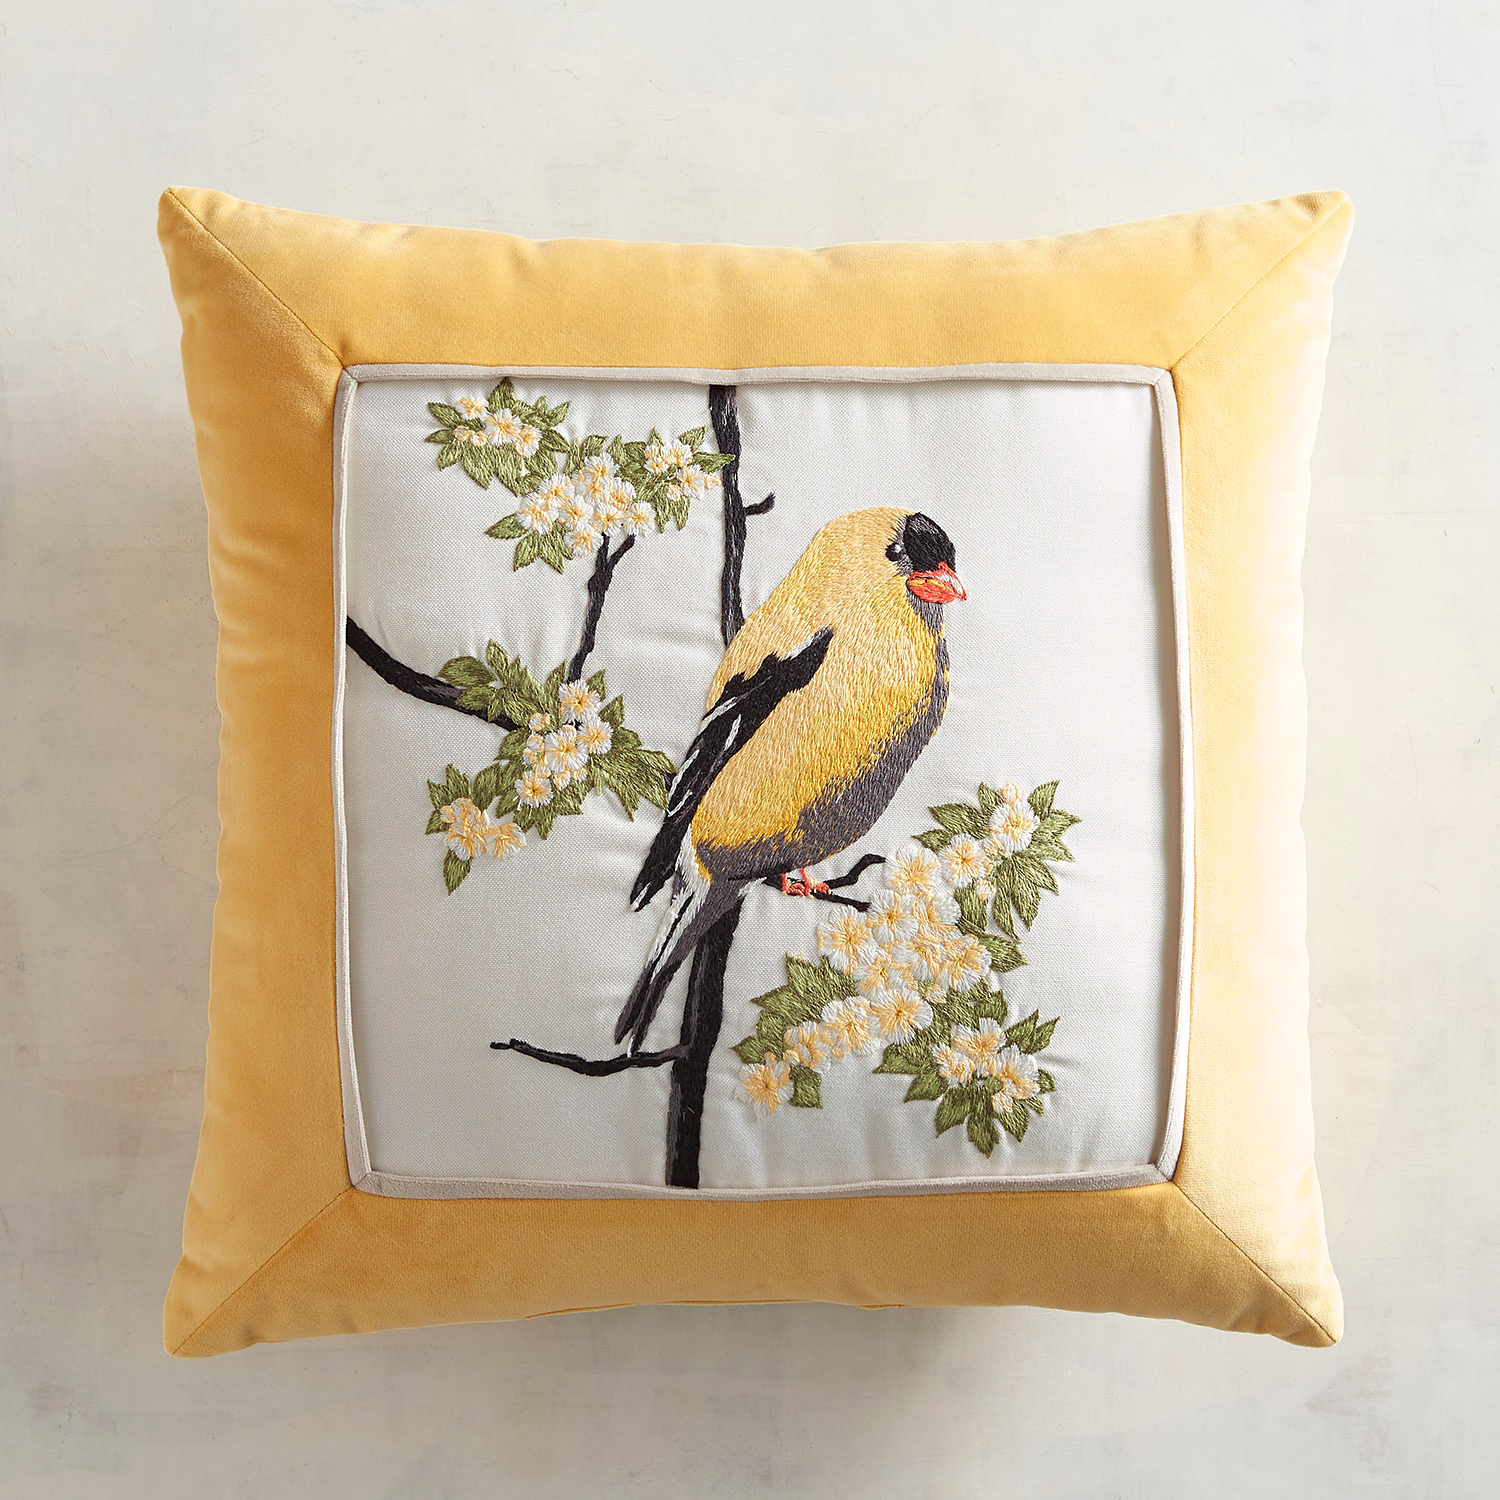 Embroidered Goldfinch Pillow